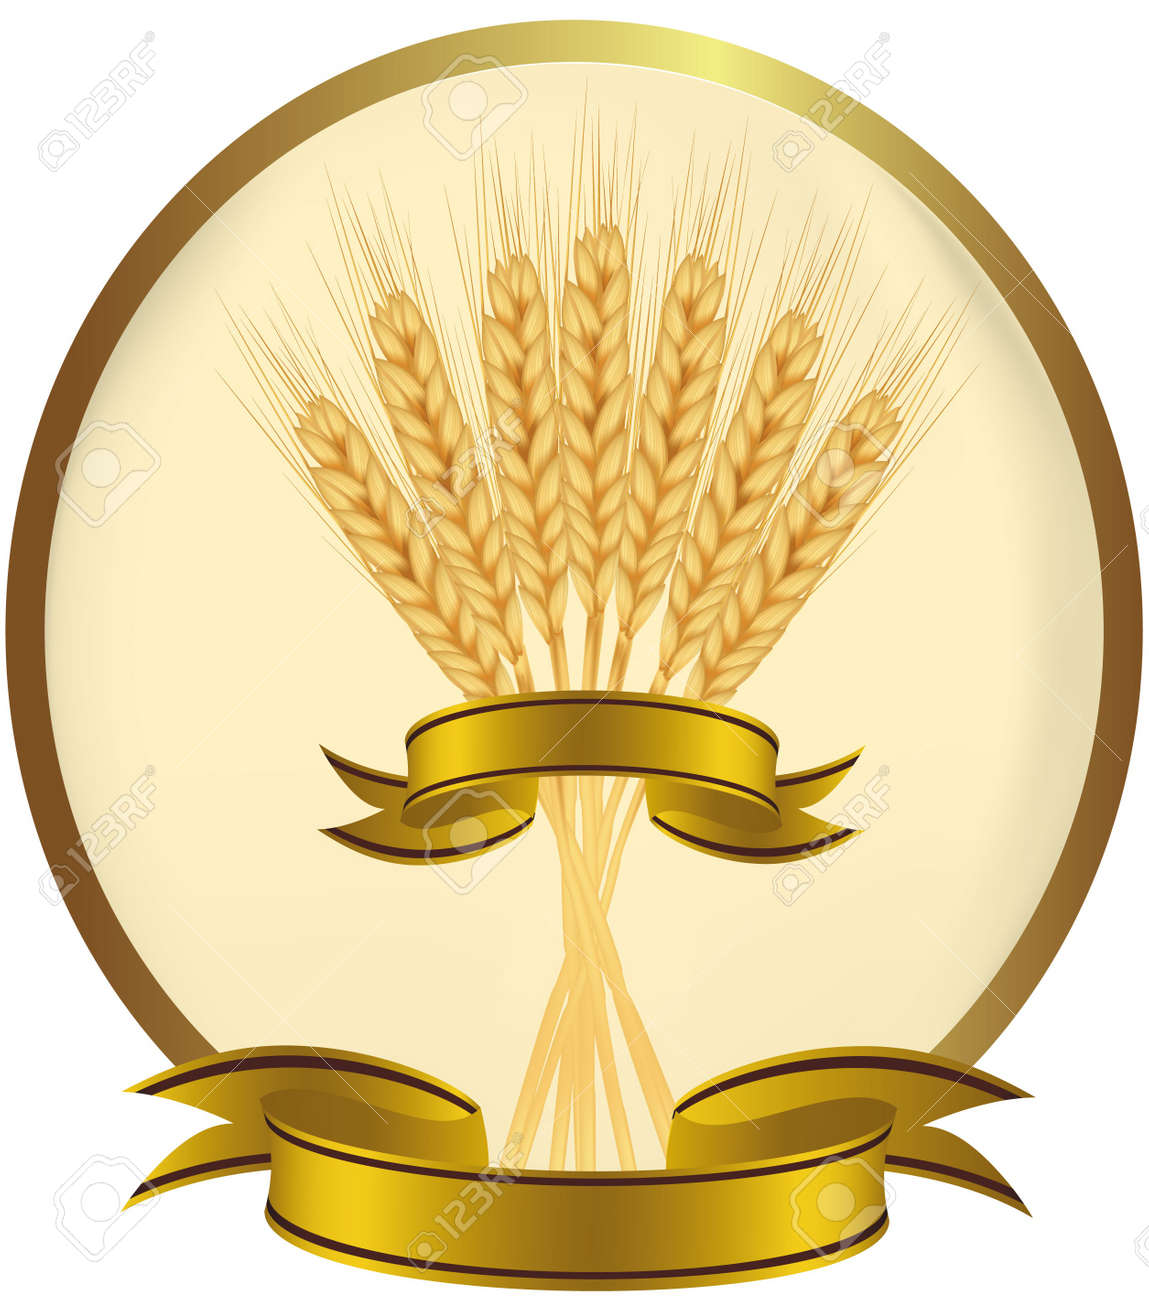 agricultural Stock Vector - 9665005